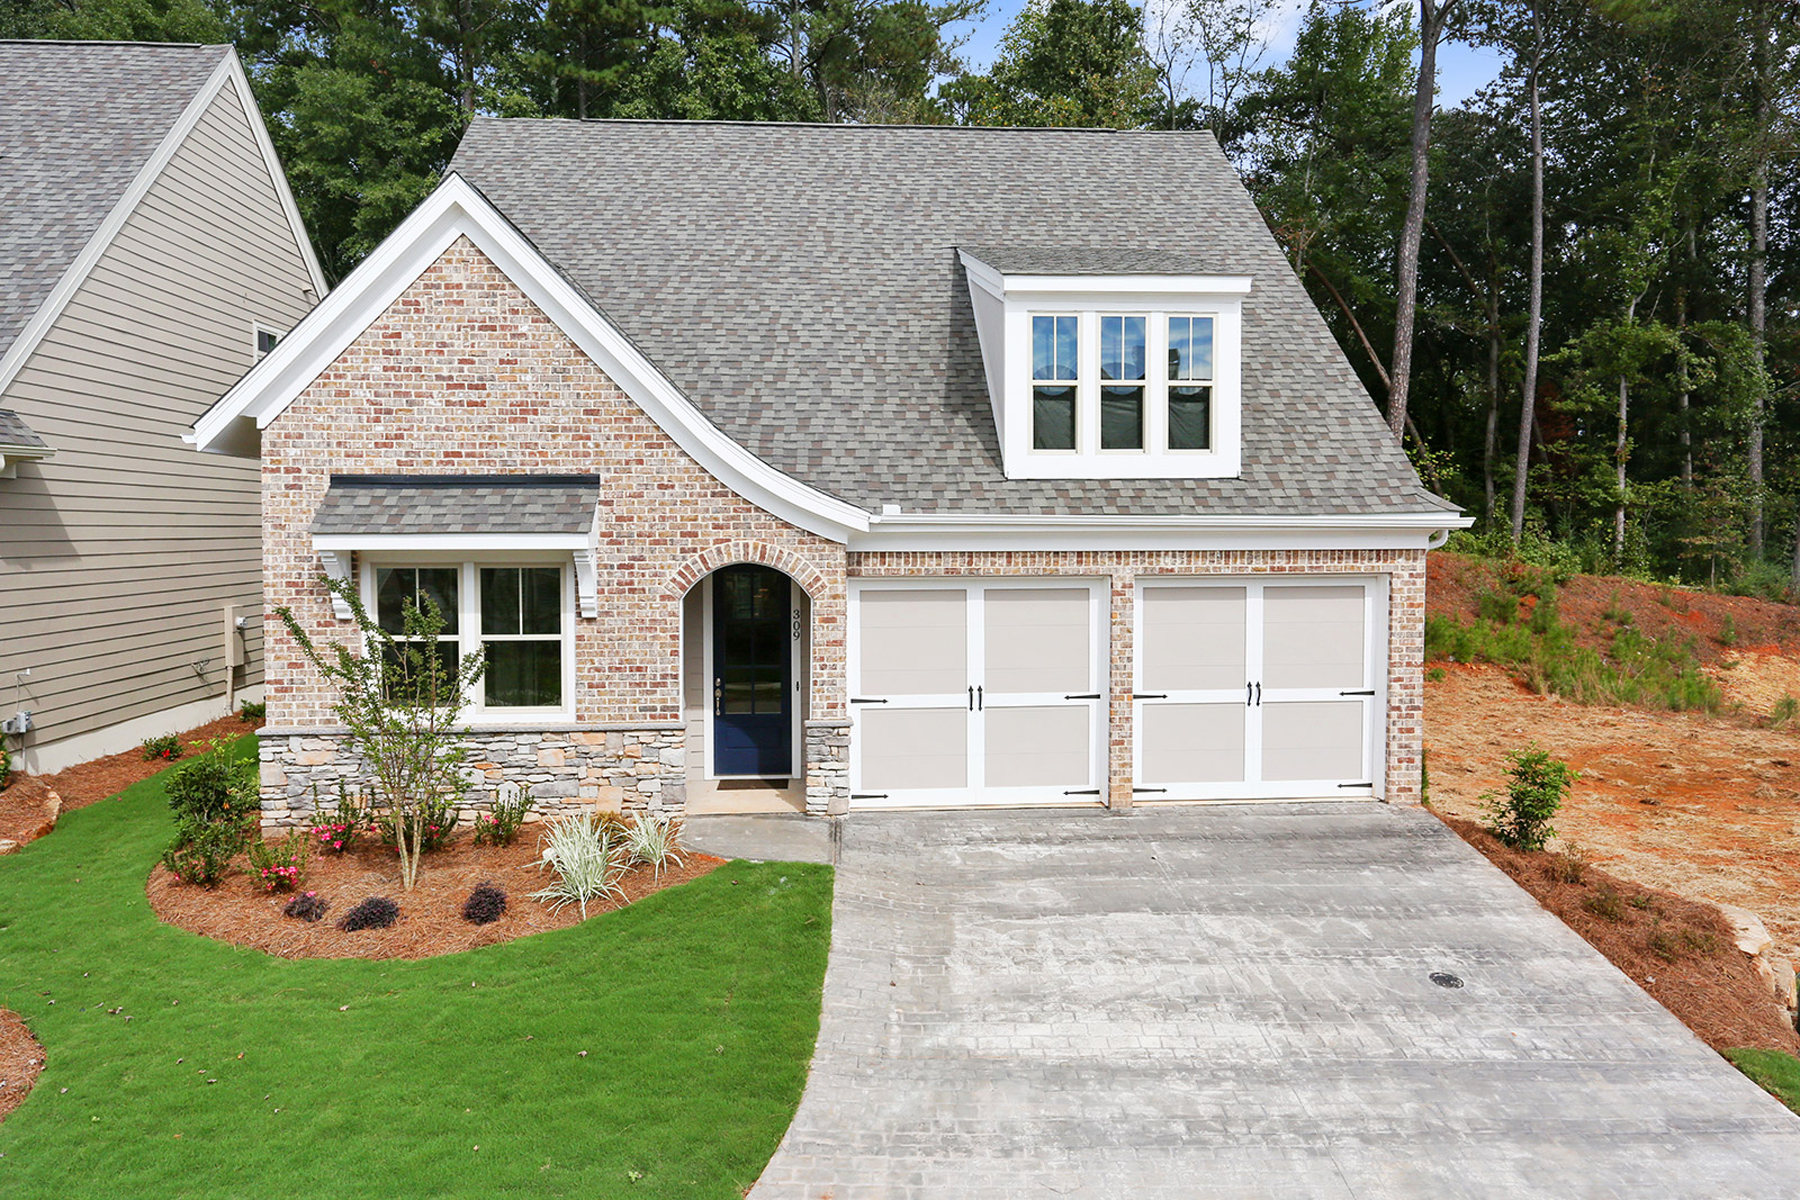 Single Family Home for Sale at Enjoy Luxury Maintenance Free Living 341 Little Pine Lane Woodstock, Georgia 30188 United States